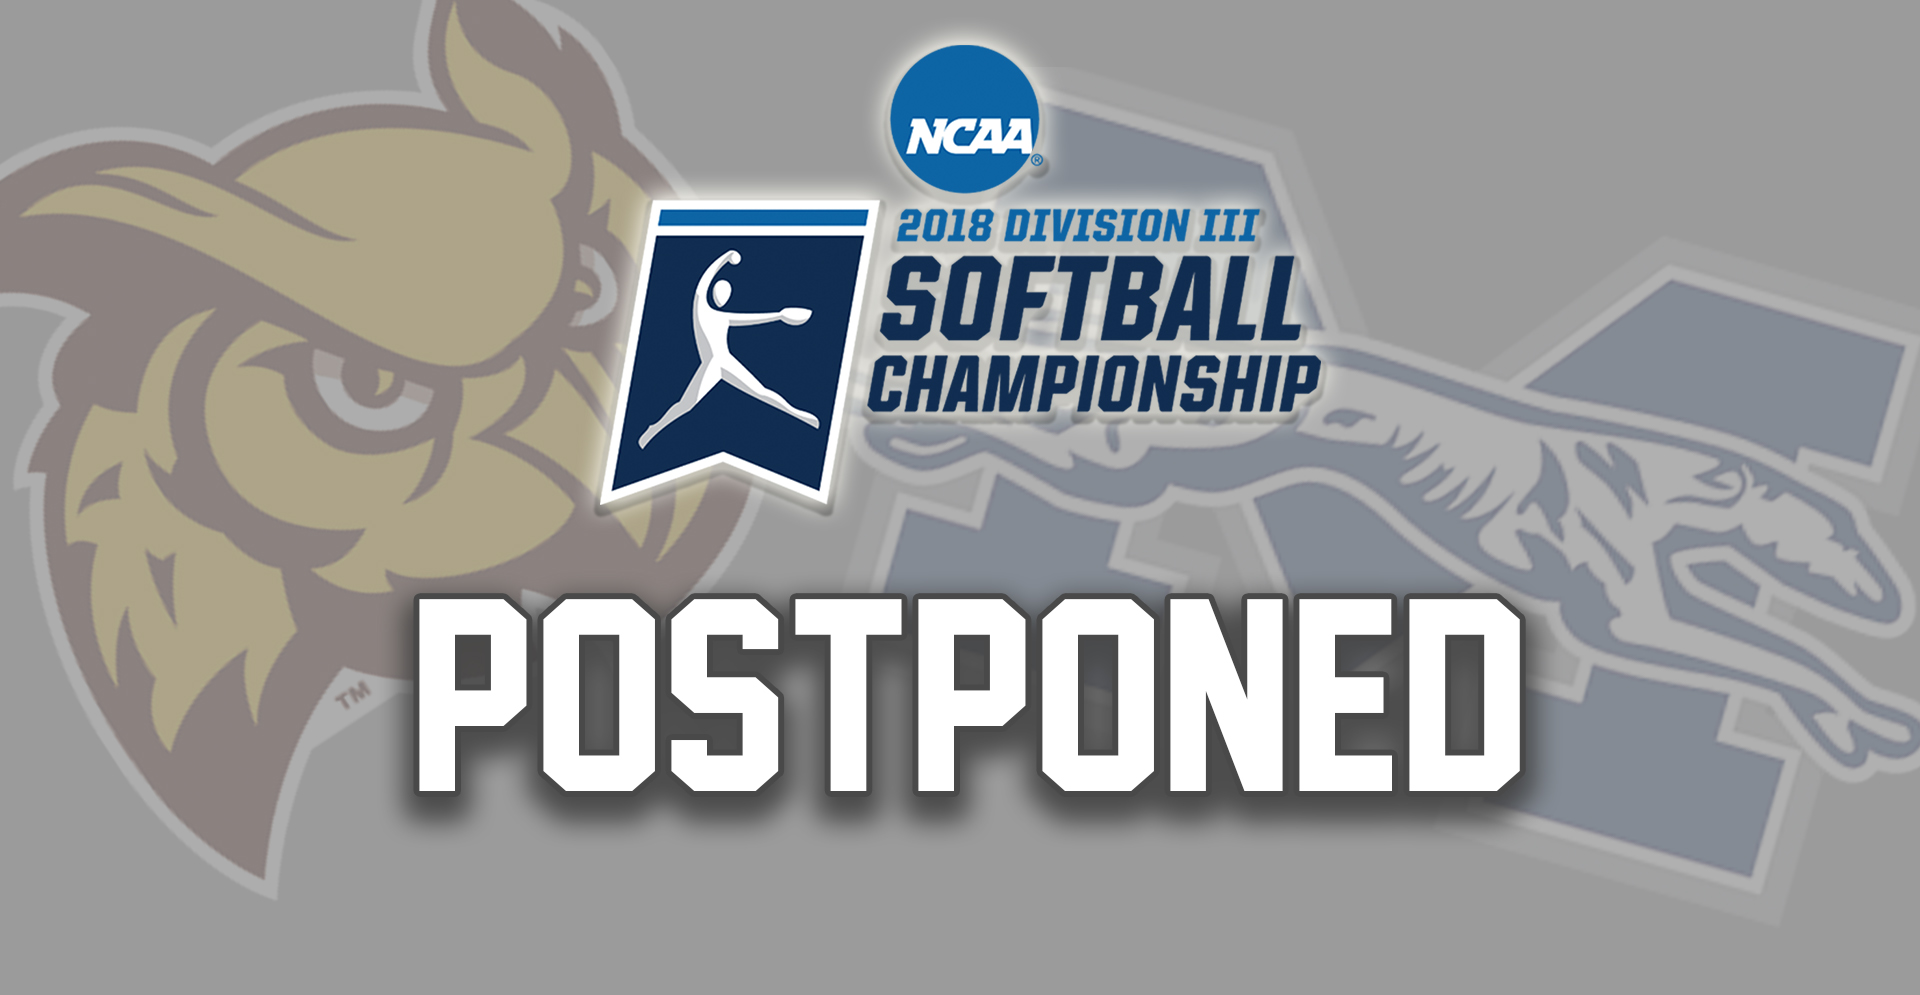 Action between Moravian and Rowan at the NCAA DIII Glassboro, N.J. Super Regional postponed to May 20 by weather.